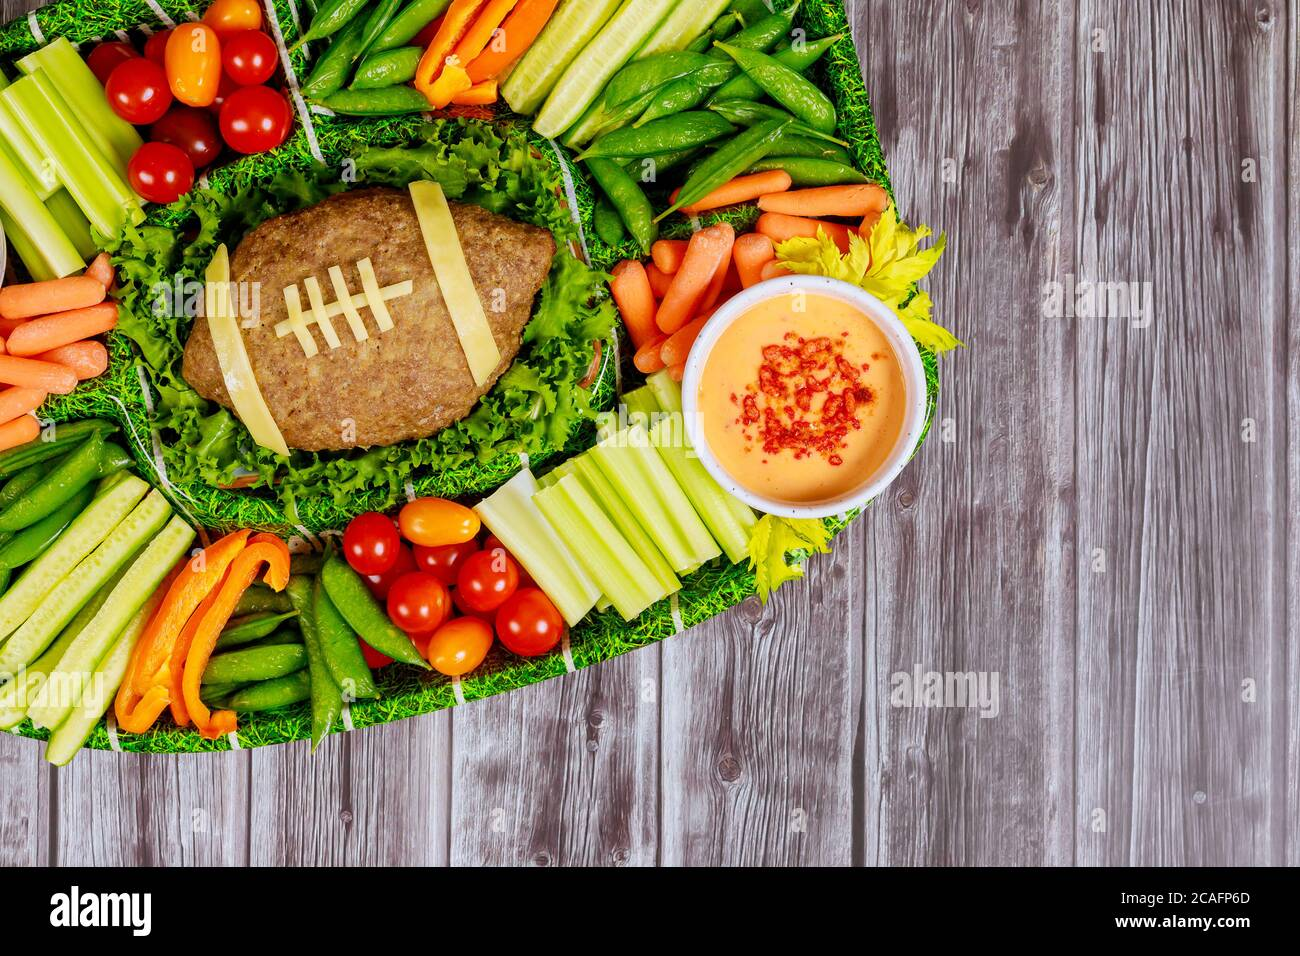 Football Meatloaf With Fresh Vegetable Platter And Dipping For Super Bowl Fan Party Stock Photo Alamy